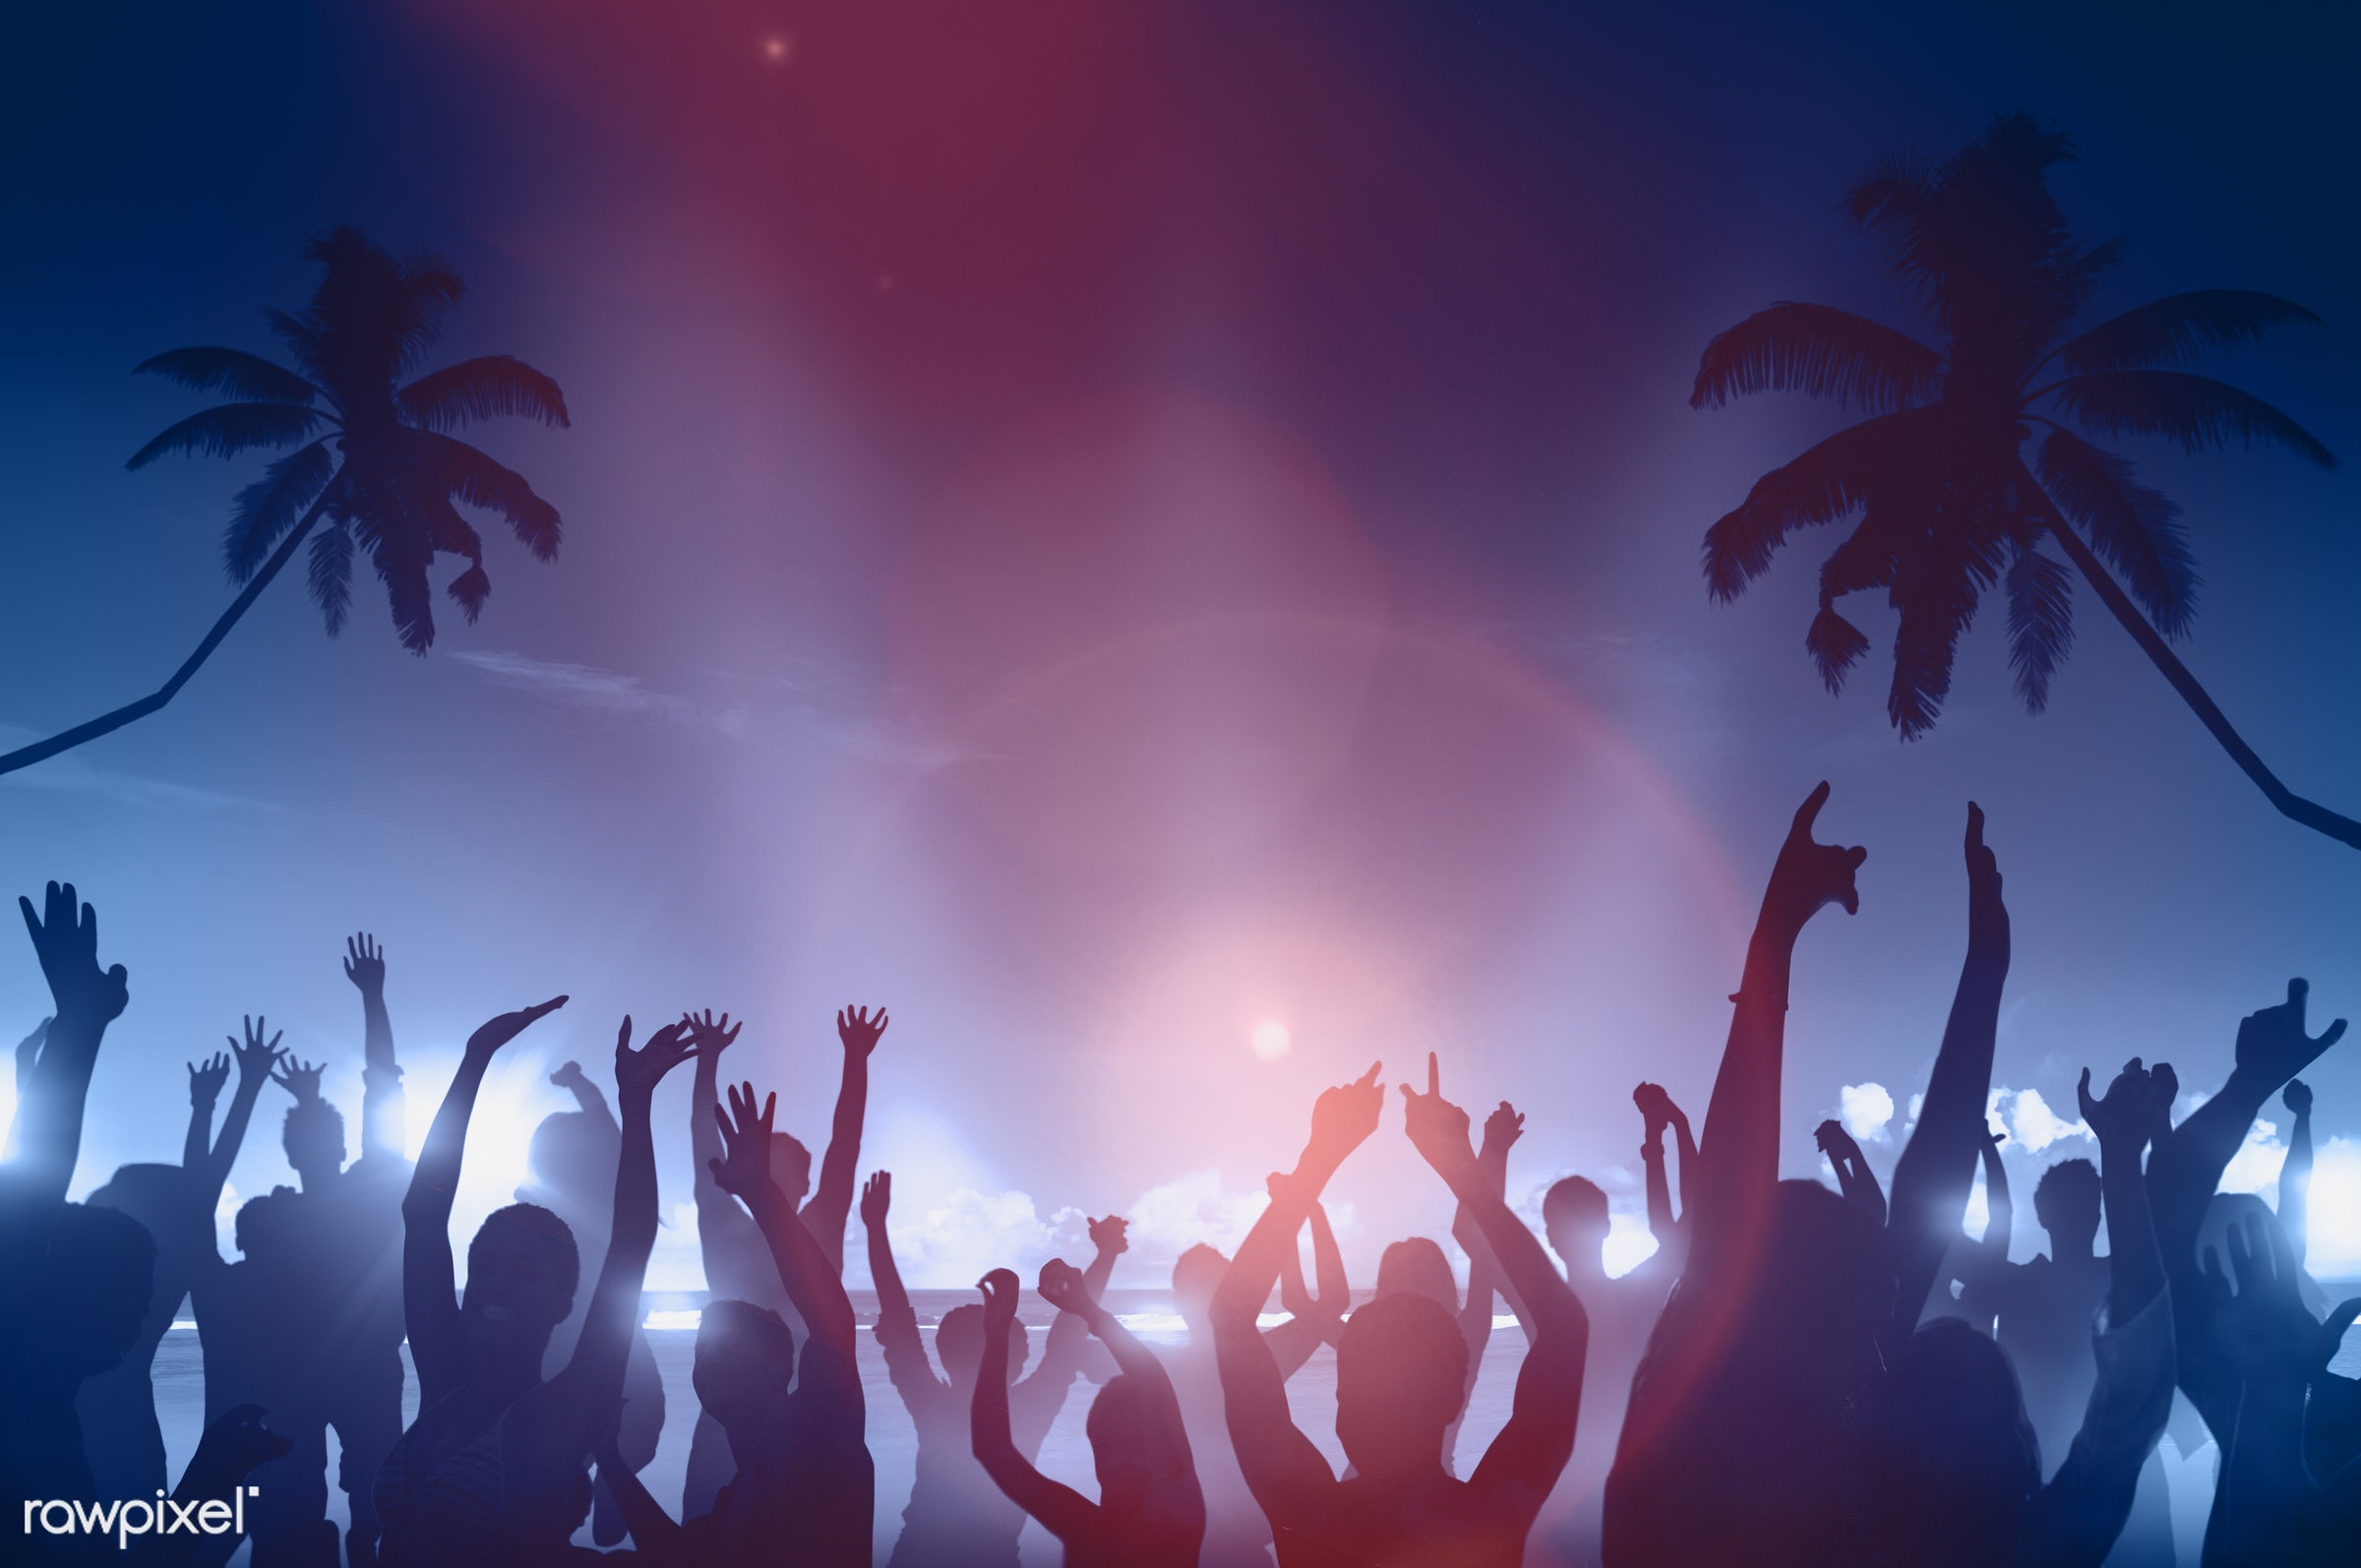 dusk, arms outstretched, arms raised, back lit, beach, beer, celebration, coconut palm tree, community, copy space, crowd,...